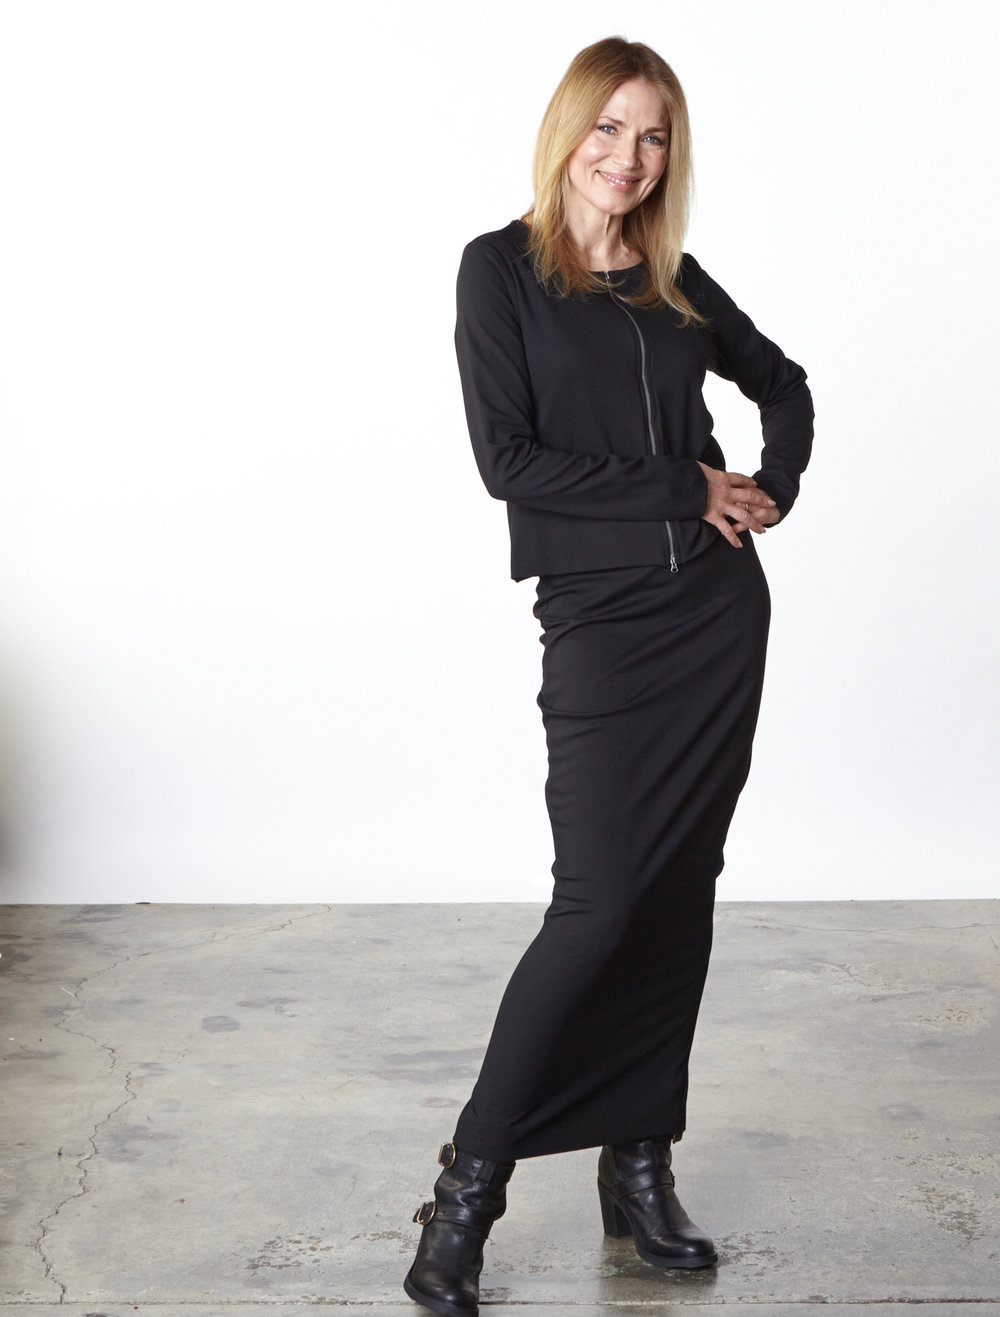 Betz Jacket, Slim Skirt in Black Modal Ponti